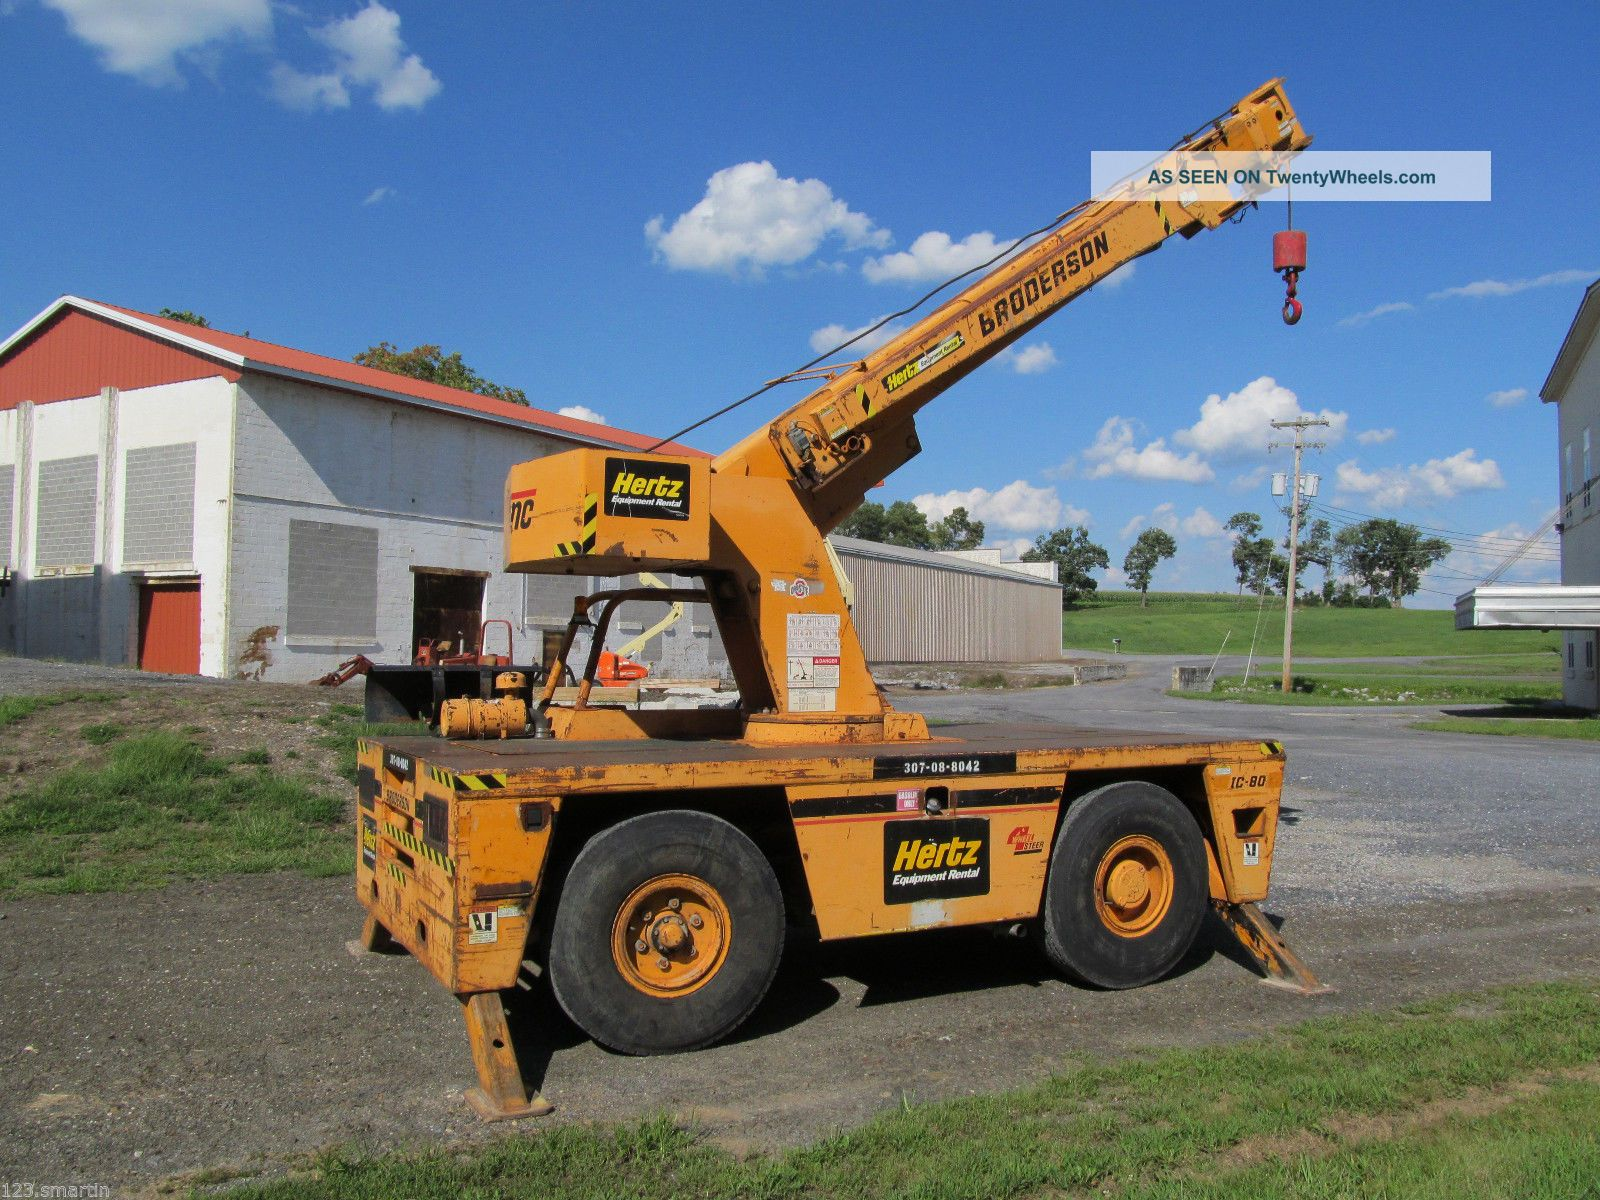 1999 Broderson Ic - 80, Carry Deck Crane, Ic 80 - 2f, 17, 000 Max.  Capacity, Lp Gas